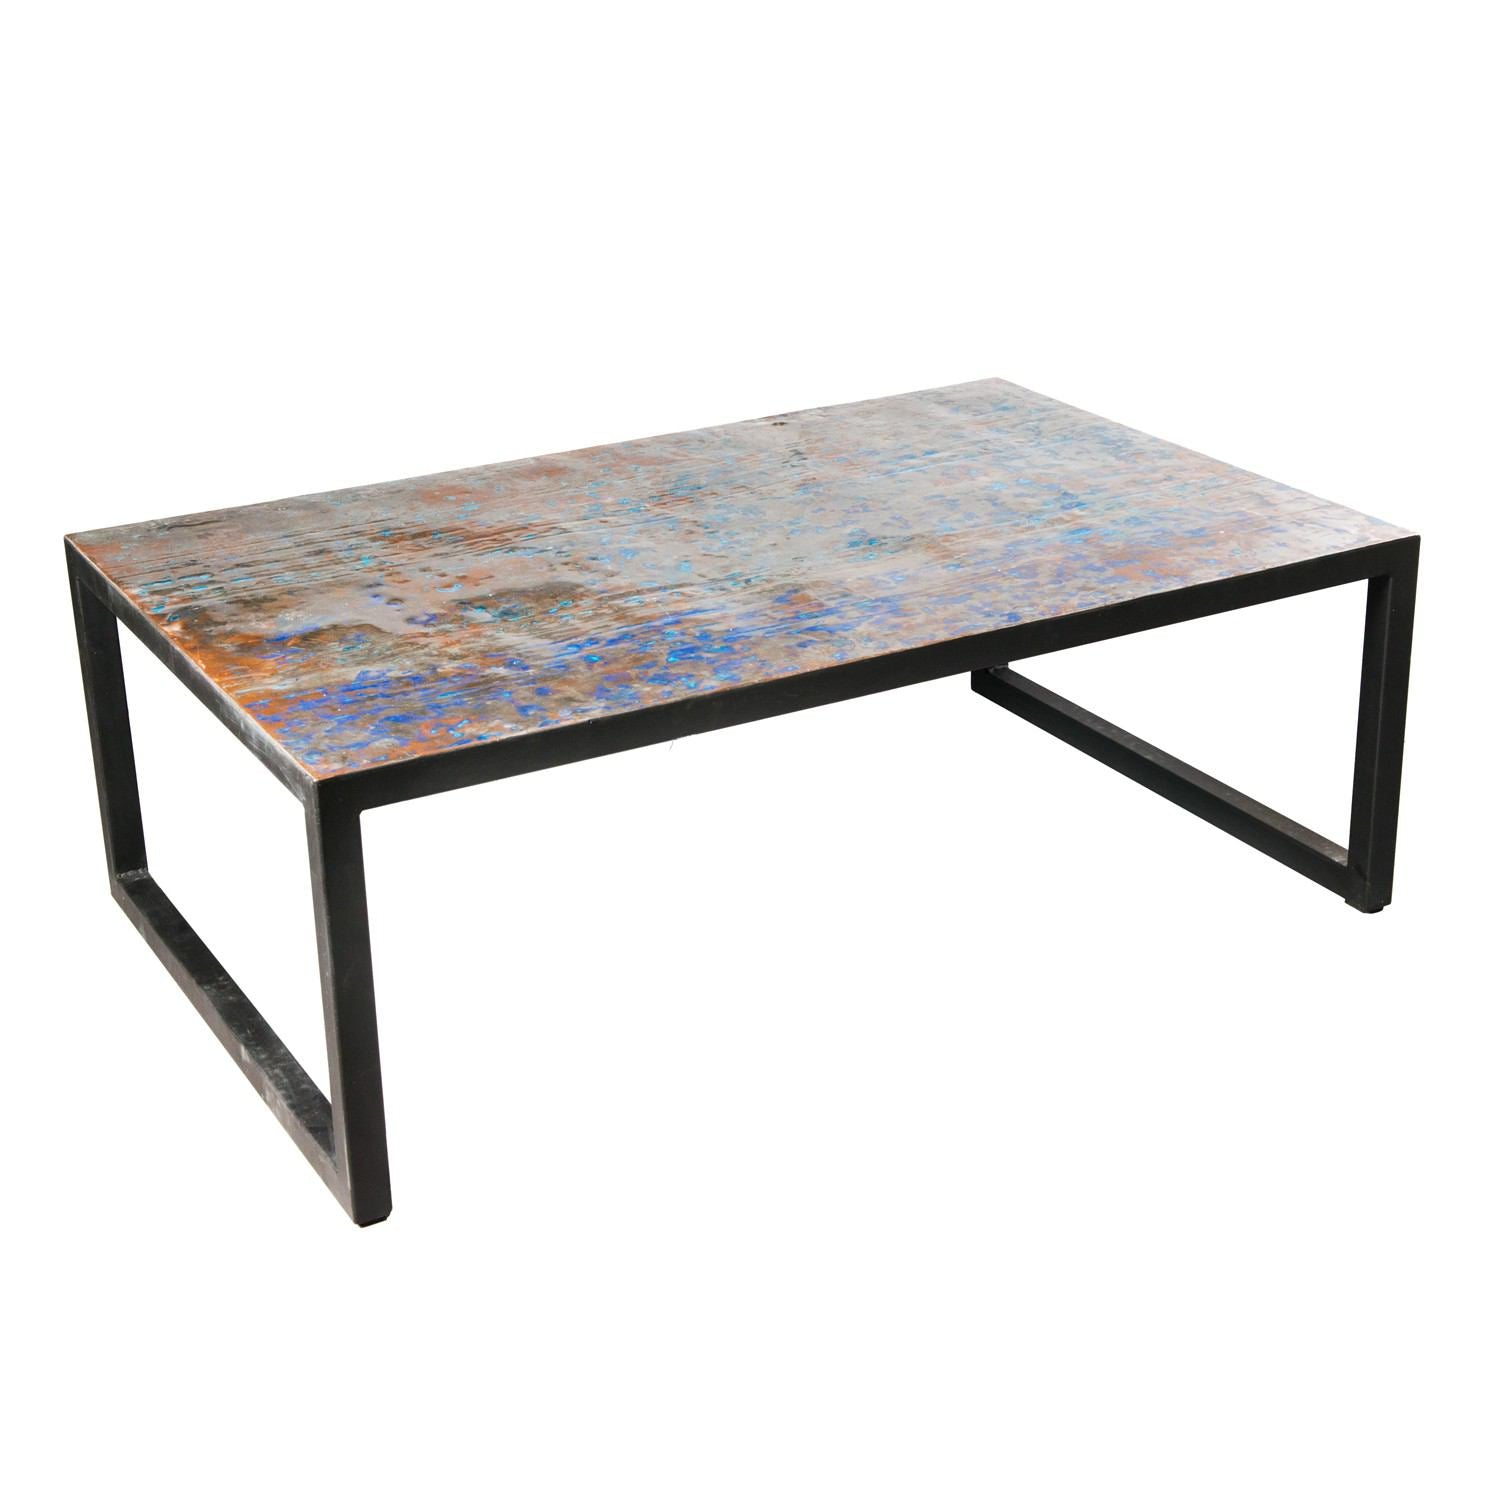 Large Metal Recycled Oil Drum Coffee Table R-1110 by AIRE Furniture